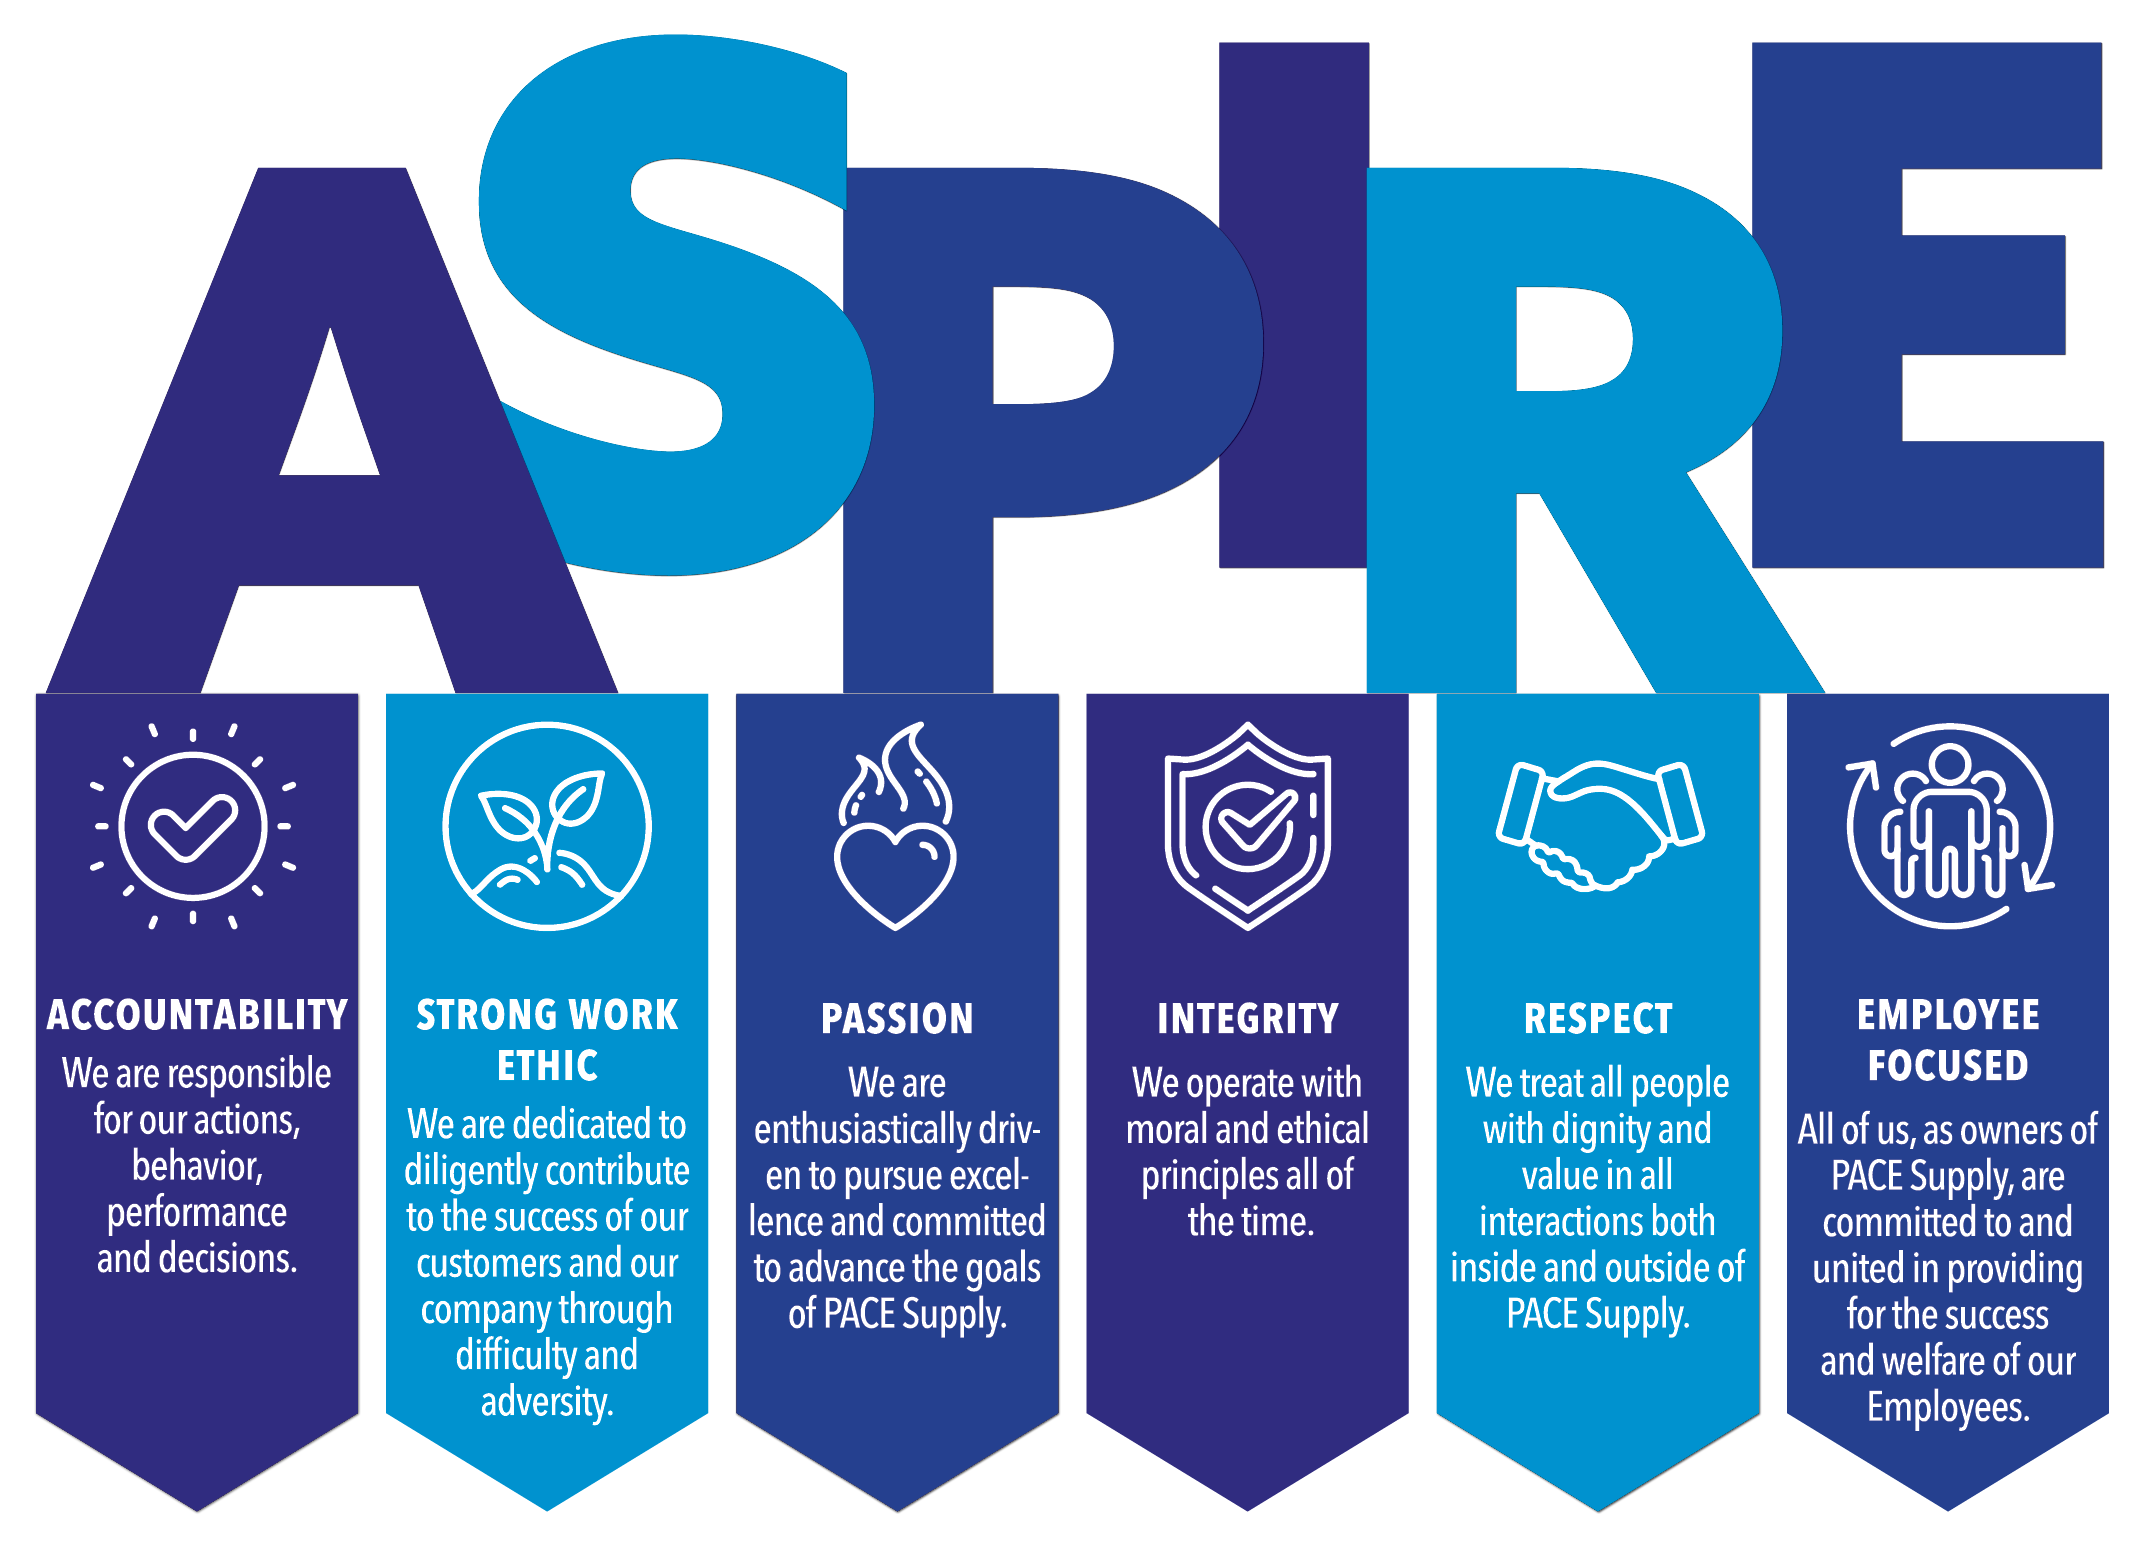 ASPIRE - Core Values Statement